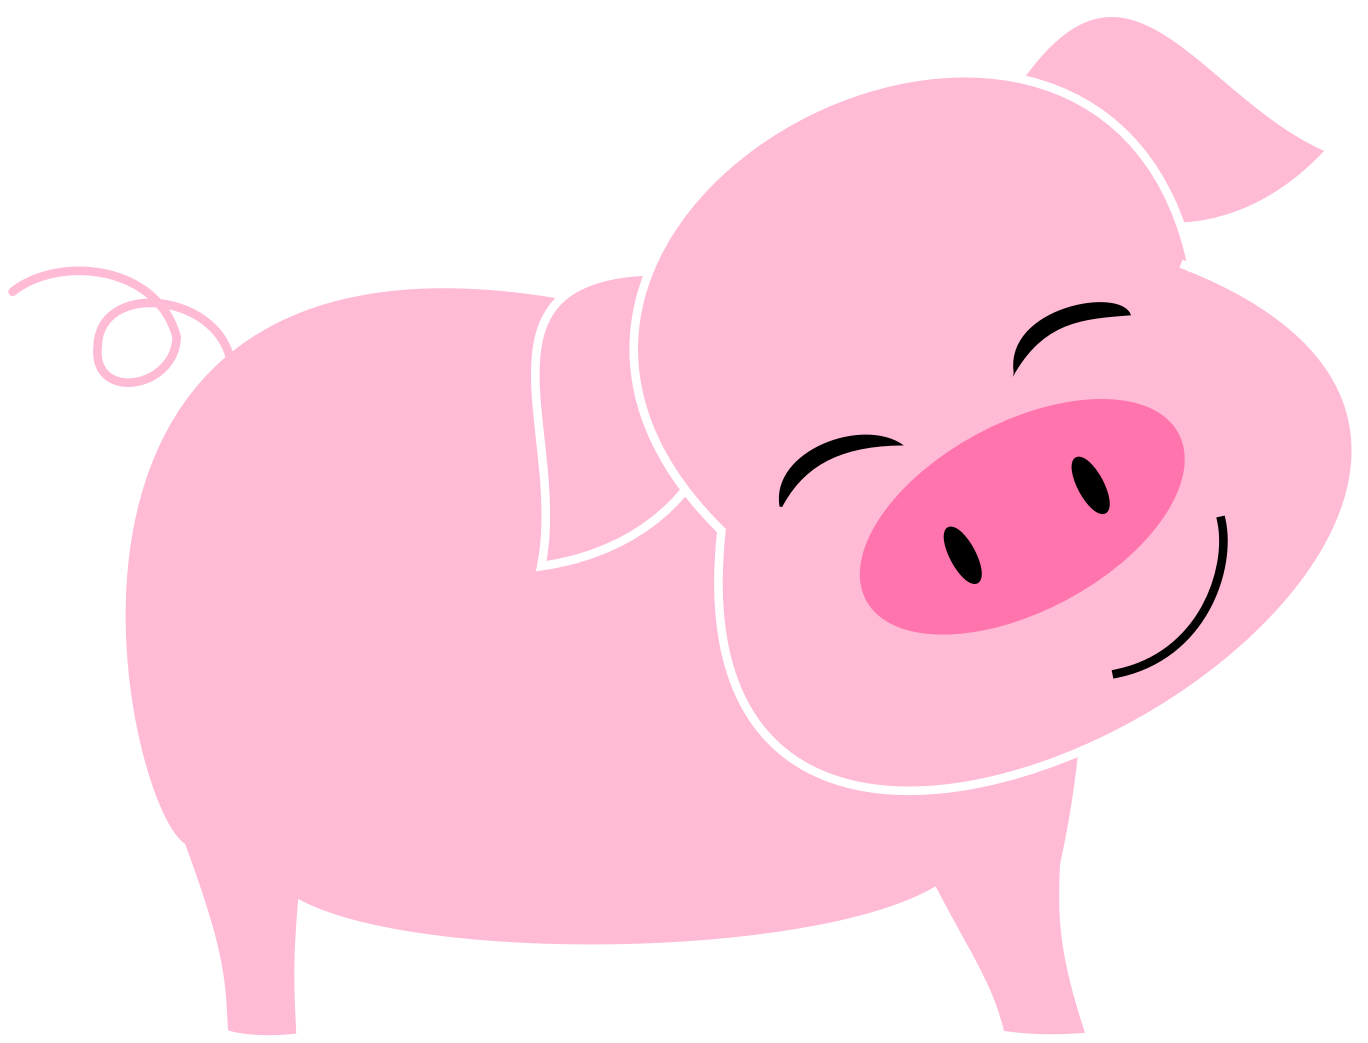 Photo by selmabuenoaltran minus. Tired clipart pig